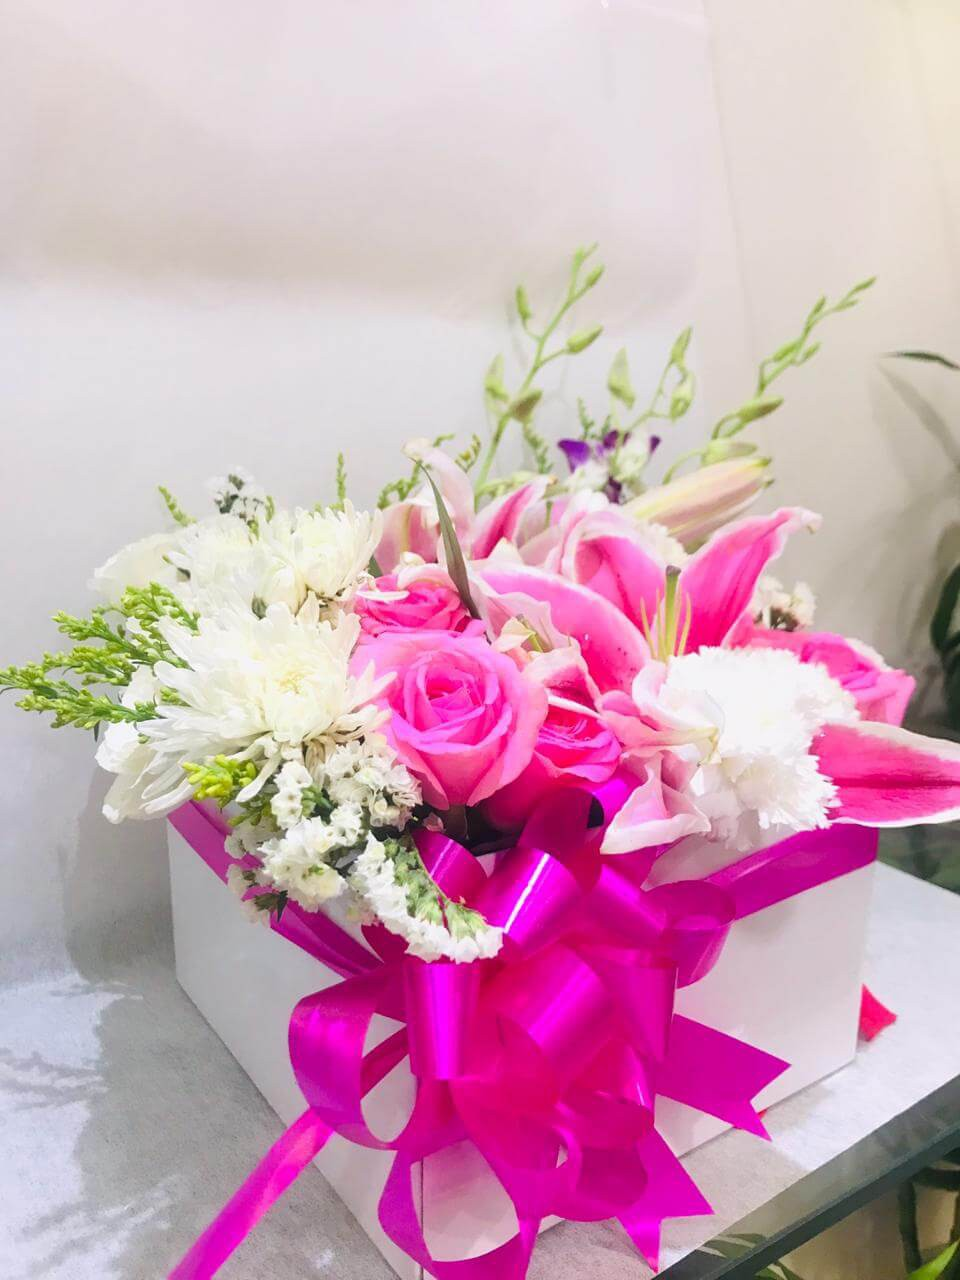 Roses, Lily, Chrysanthemums, Orchids - Cute in Box